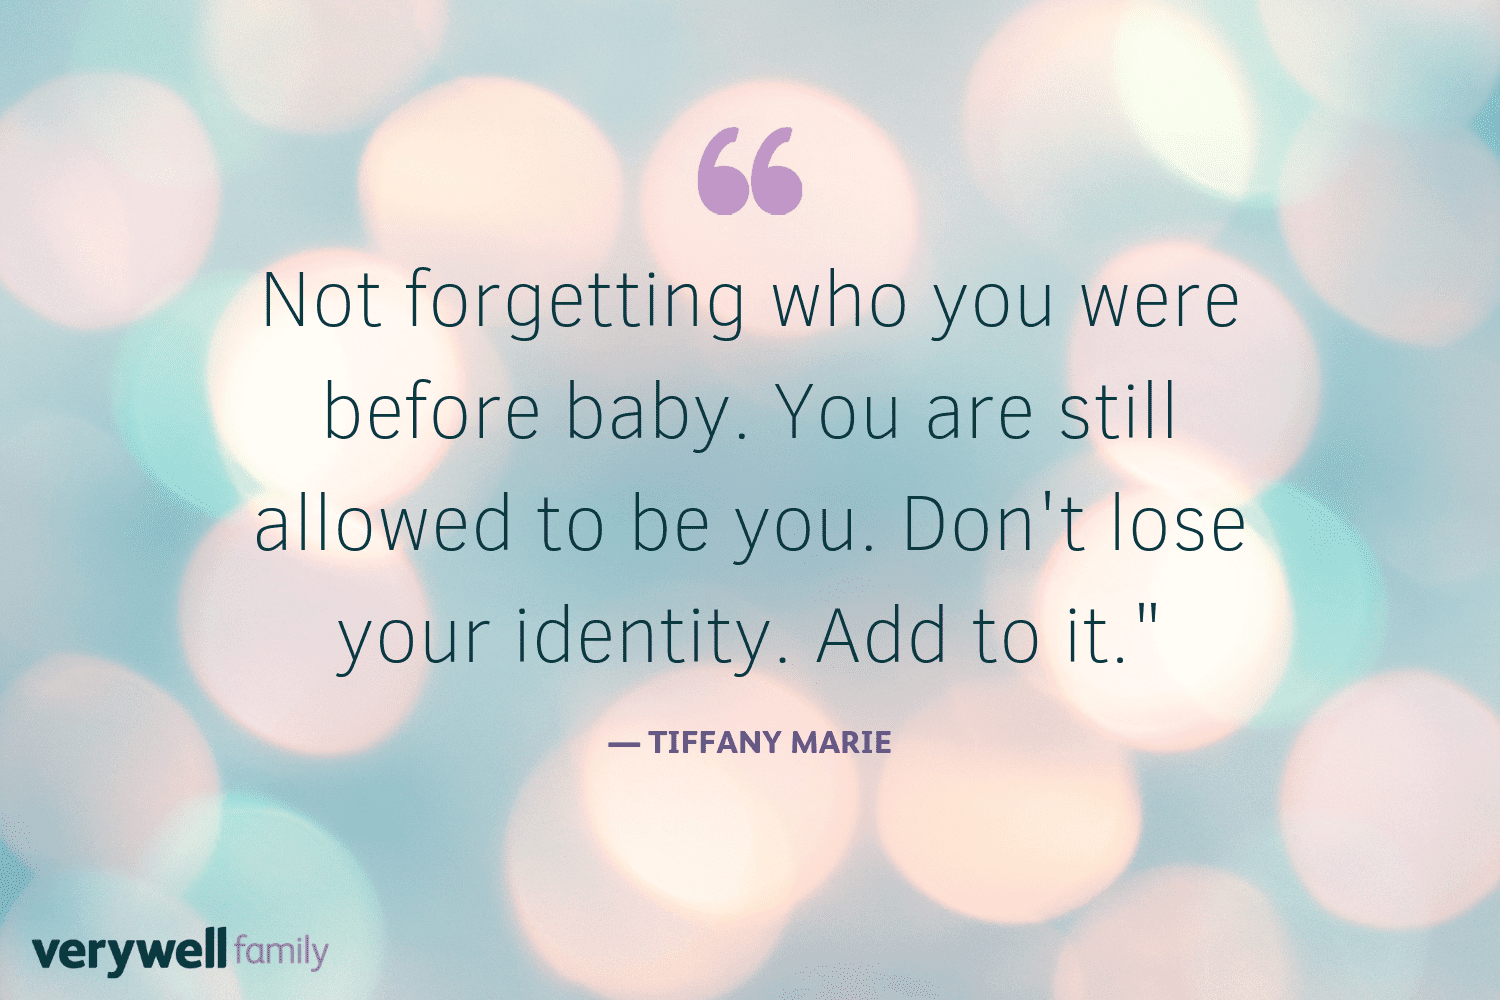 Verywell Family postpartum quote by Tiffany Marie